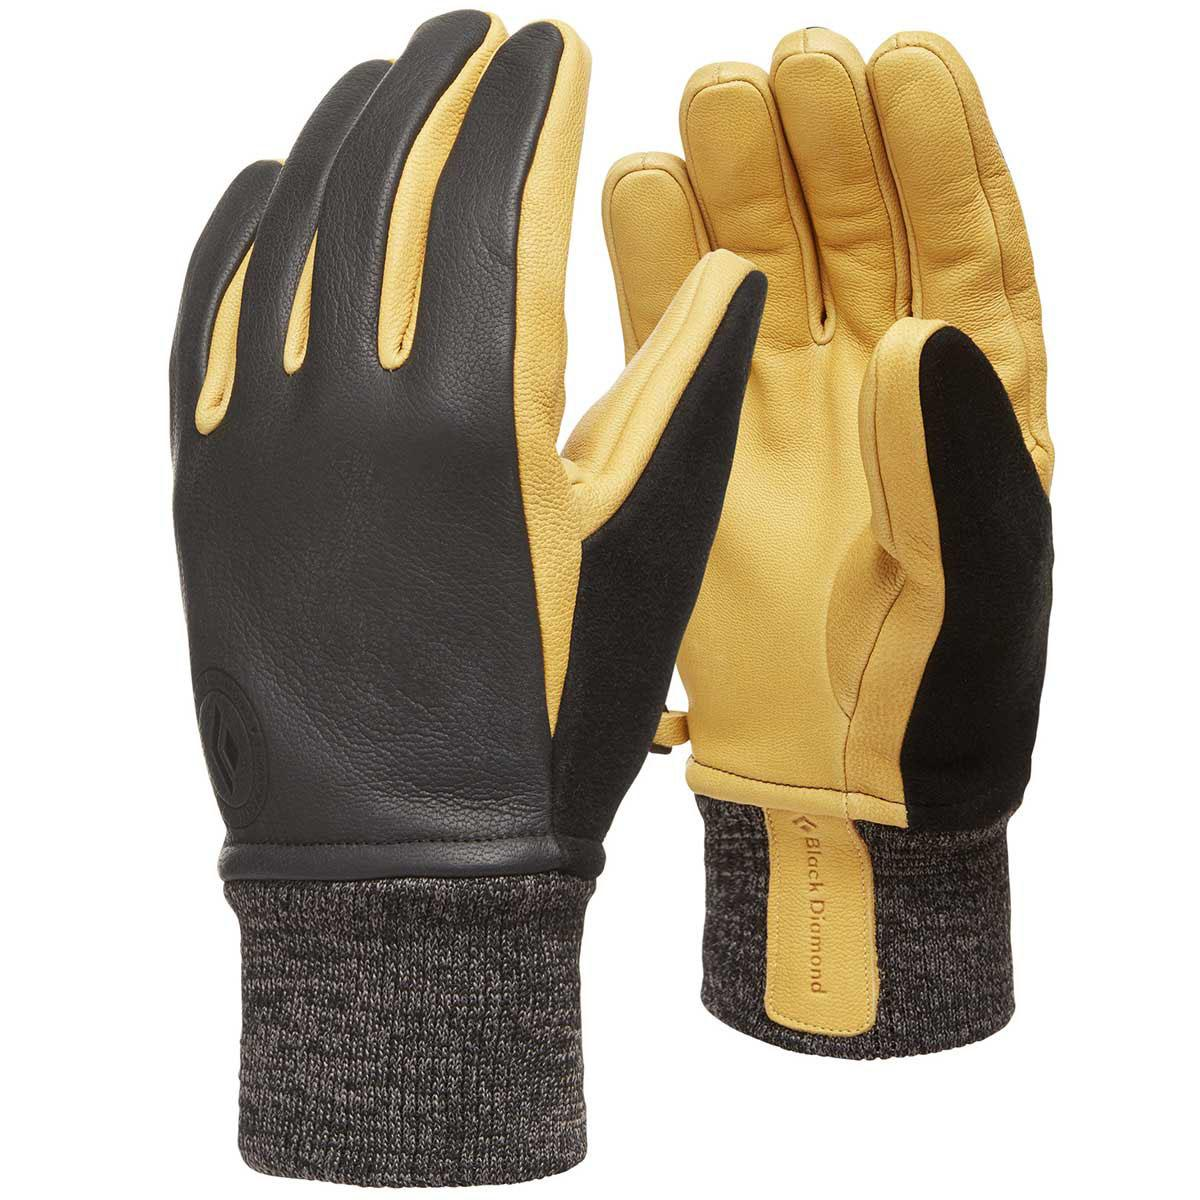 Black Diamond Men's Dirt Bag Glove in Black